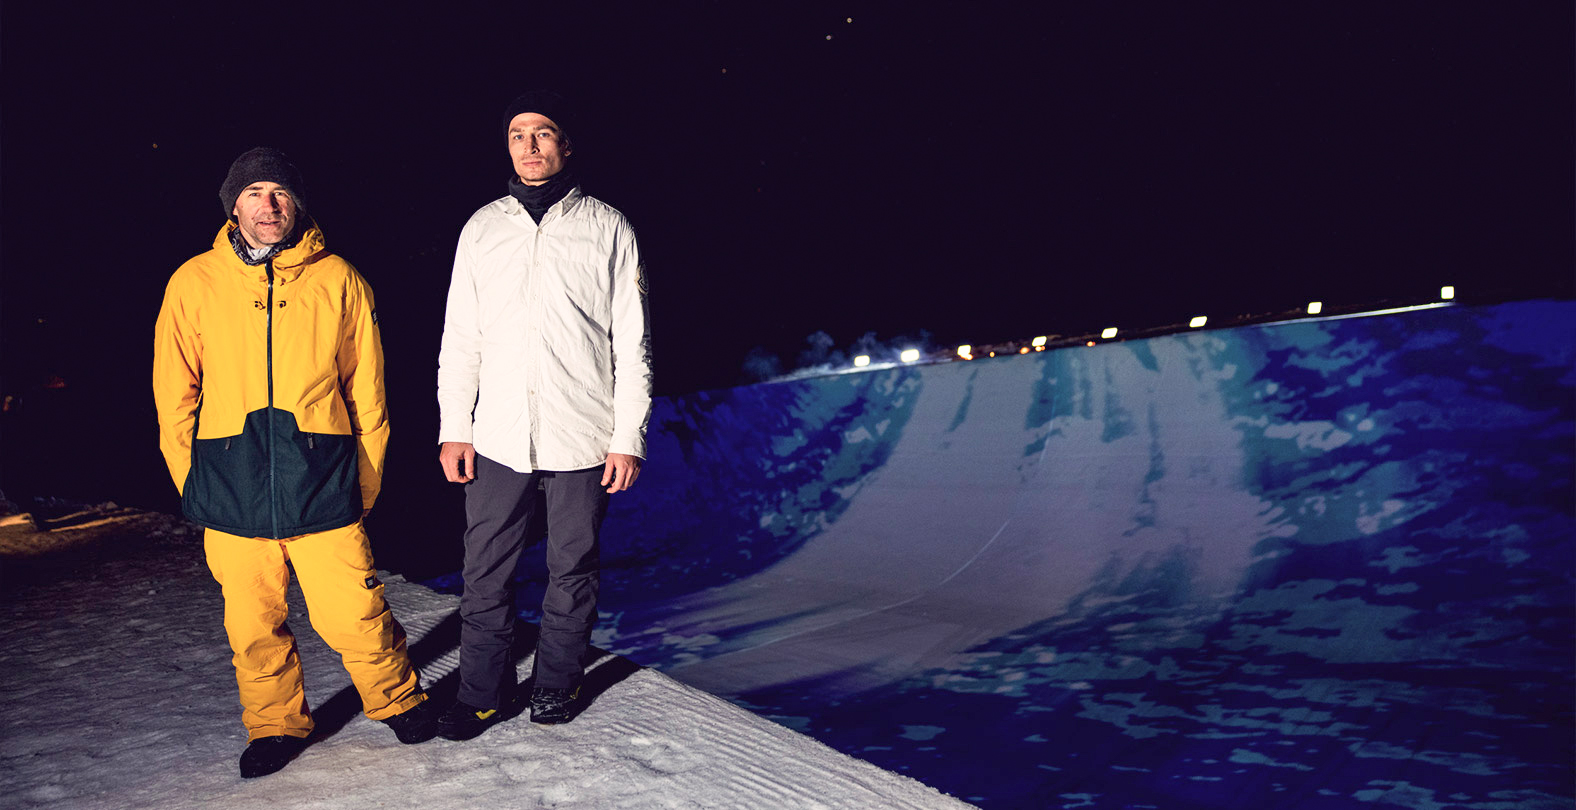 Gian Simmen and Iouri Podladtchikov light up the halfpipe